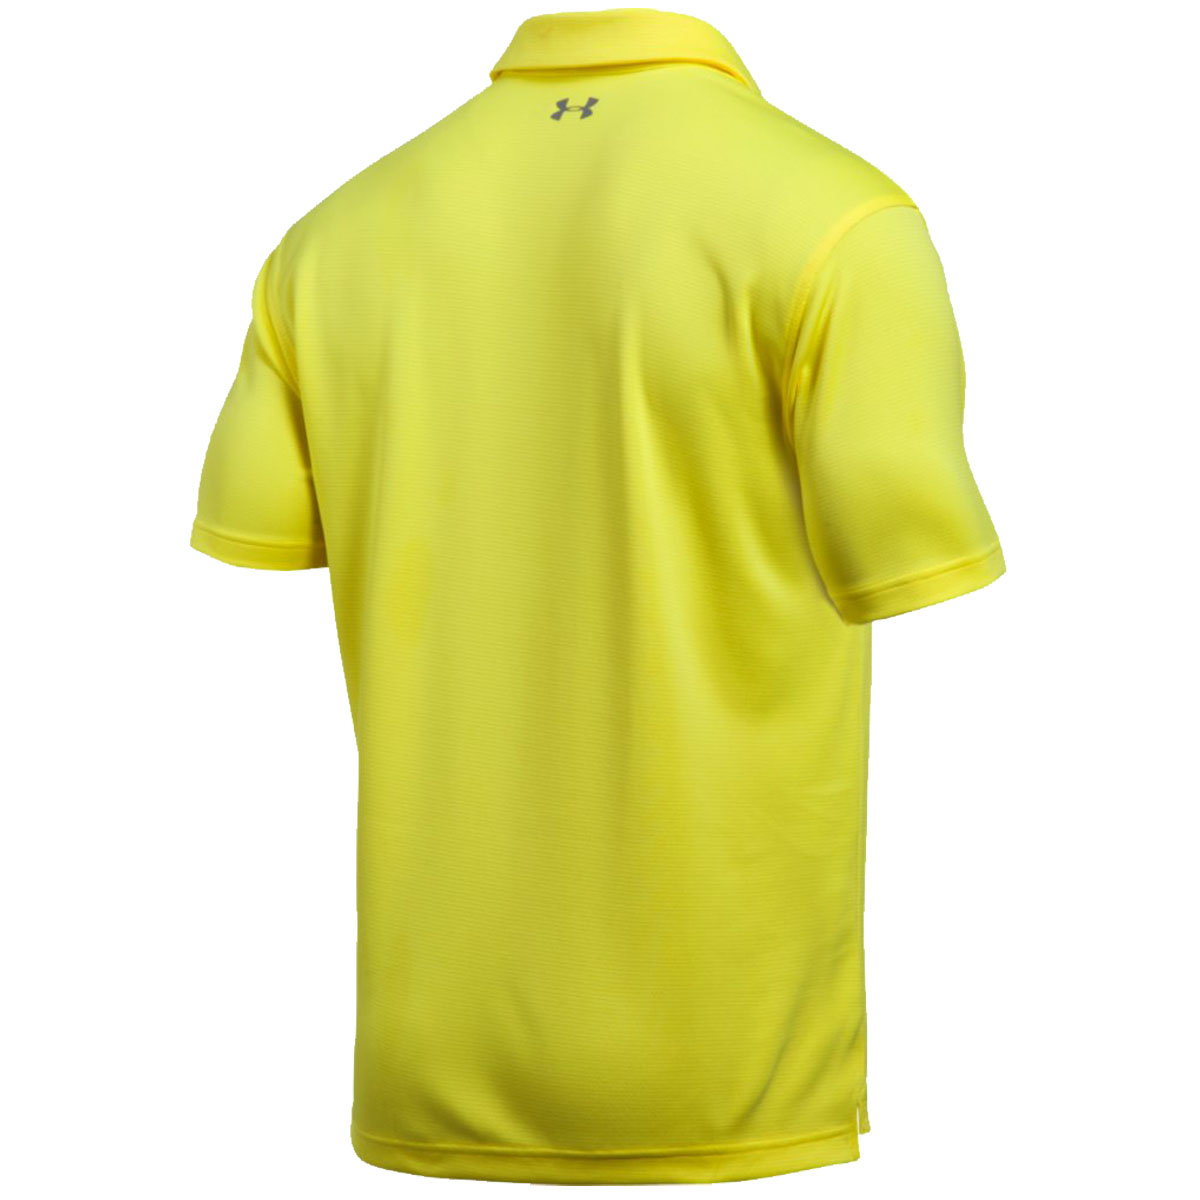 Under-Armour-Mens-2019-Golf-Tech-Wicking-Textured-Soft-Light-Polo-Shirt thumbnail 67